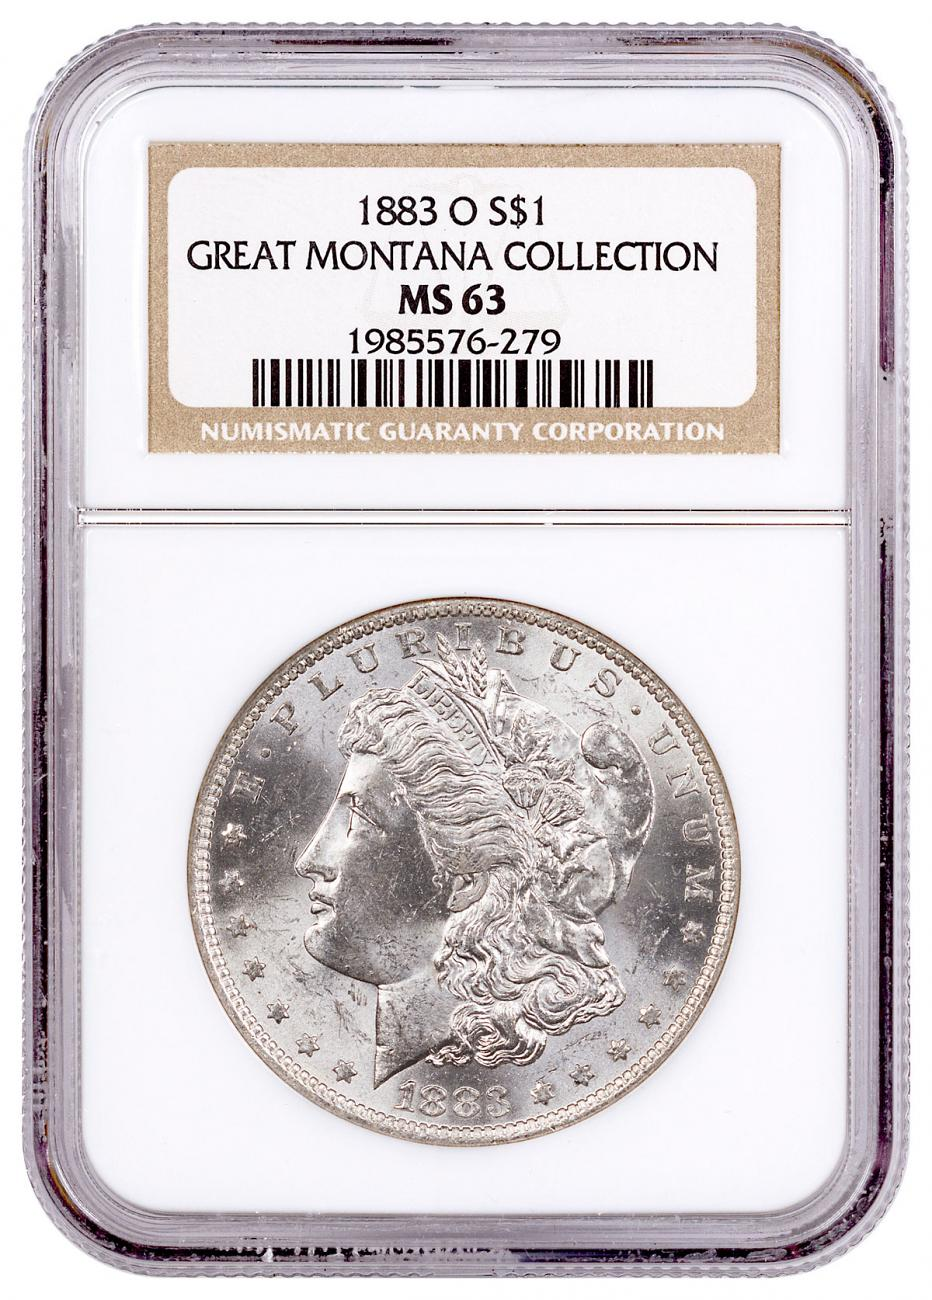 1883-O Morgan Silver Dollar From the Great Montana Collection NGC MS63 with Morgan Guide